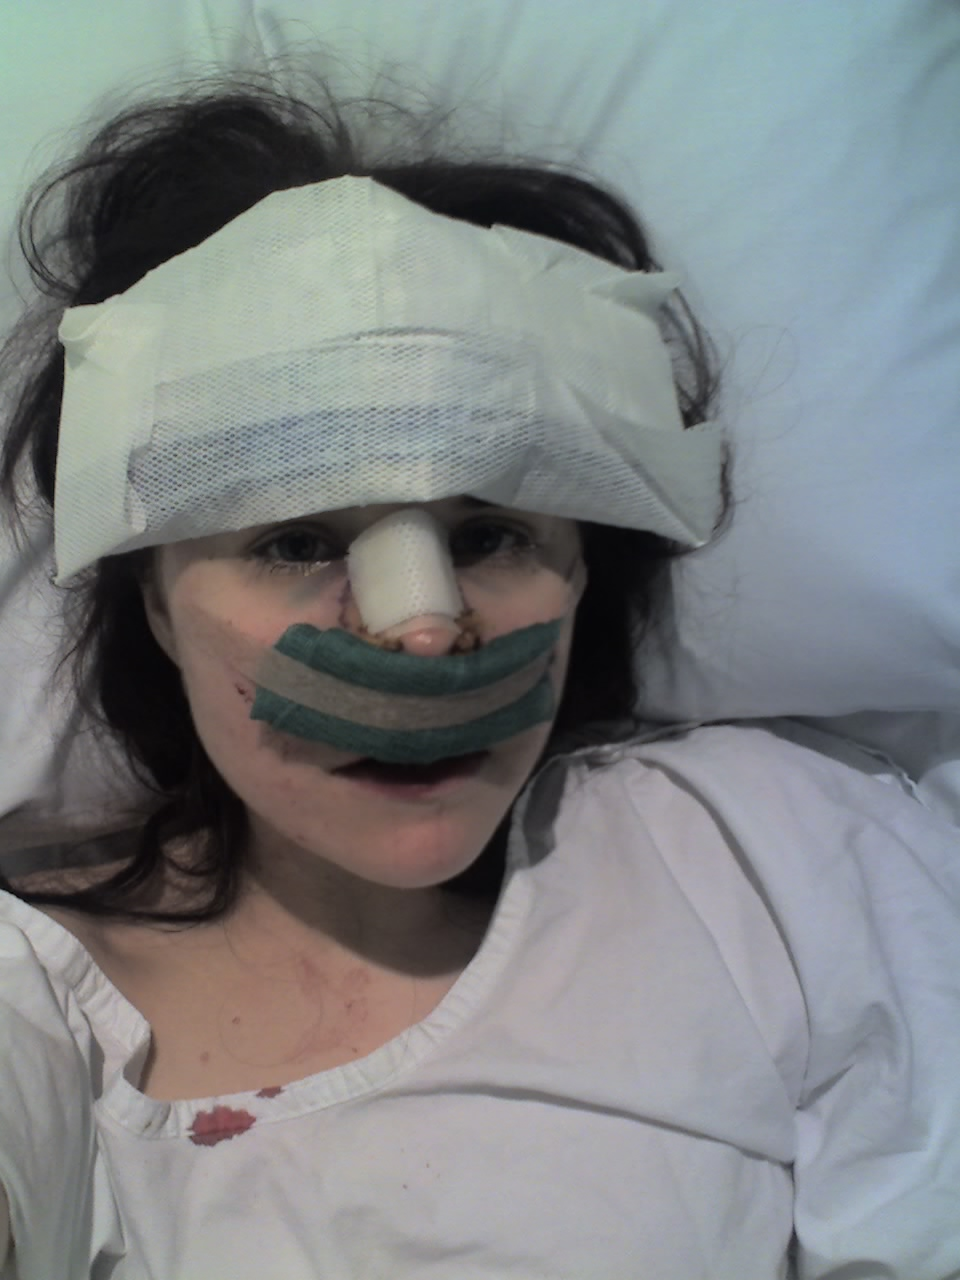 Right after surgery - in the recovery room!